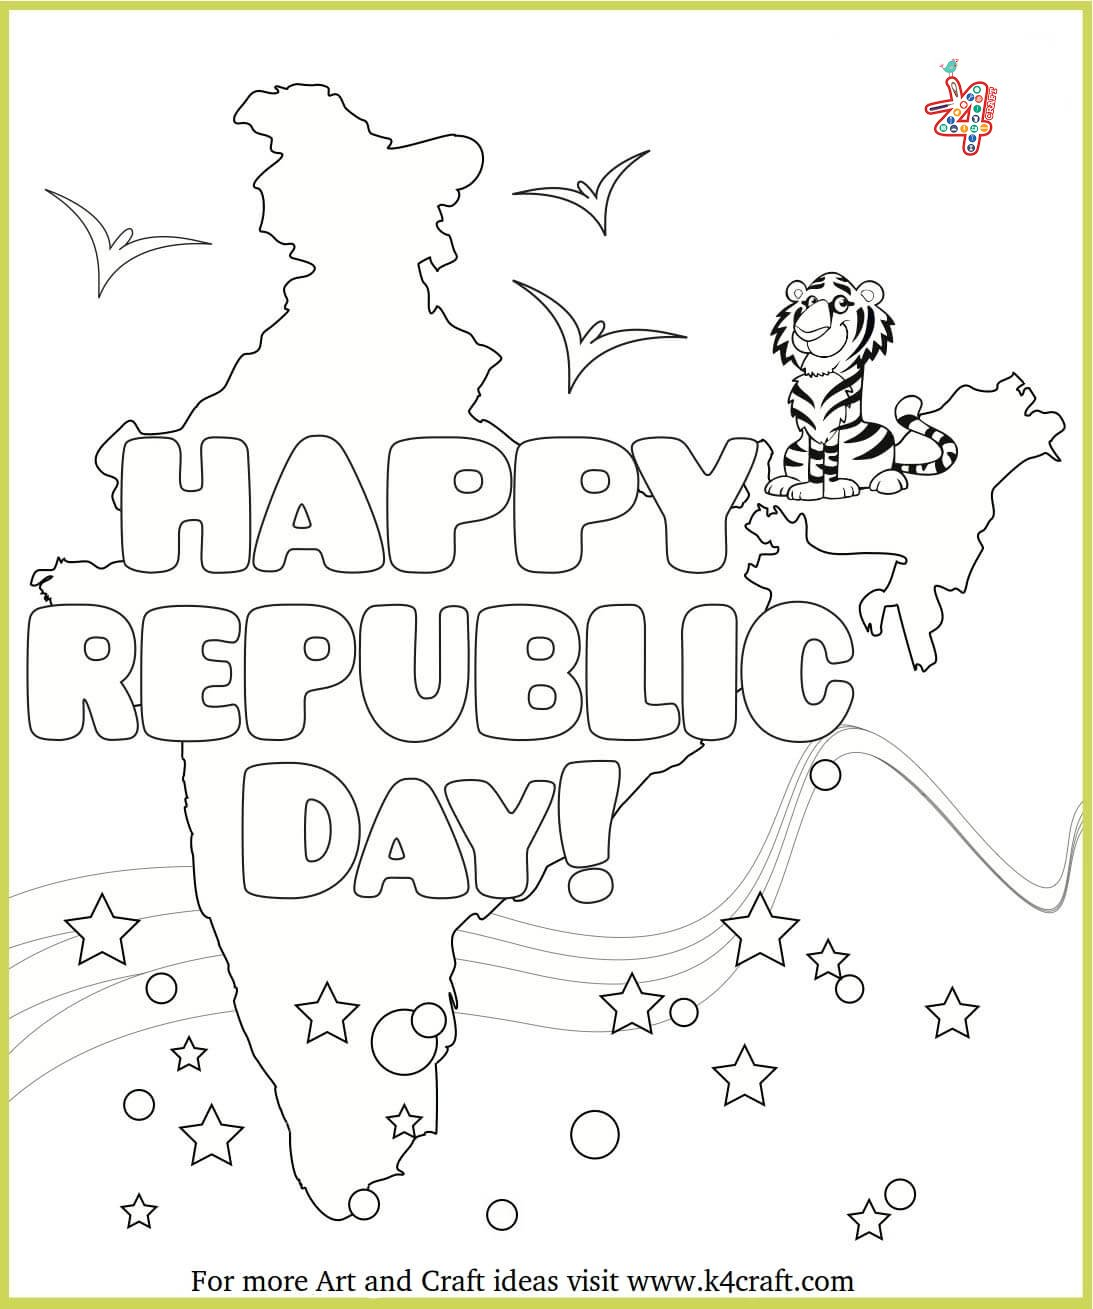 India-map-drawing-art The Ultimate List: 50+ Ideas for India Republic Day Celebration